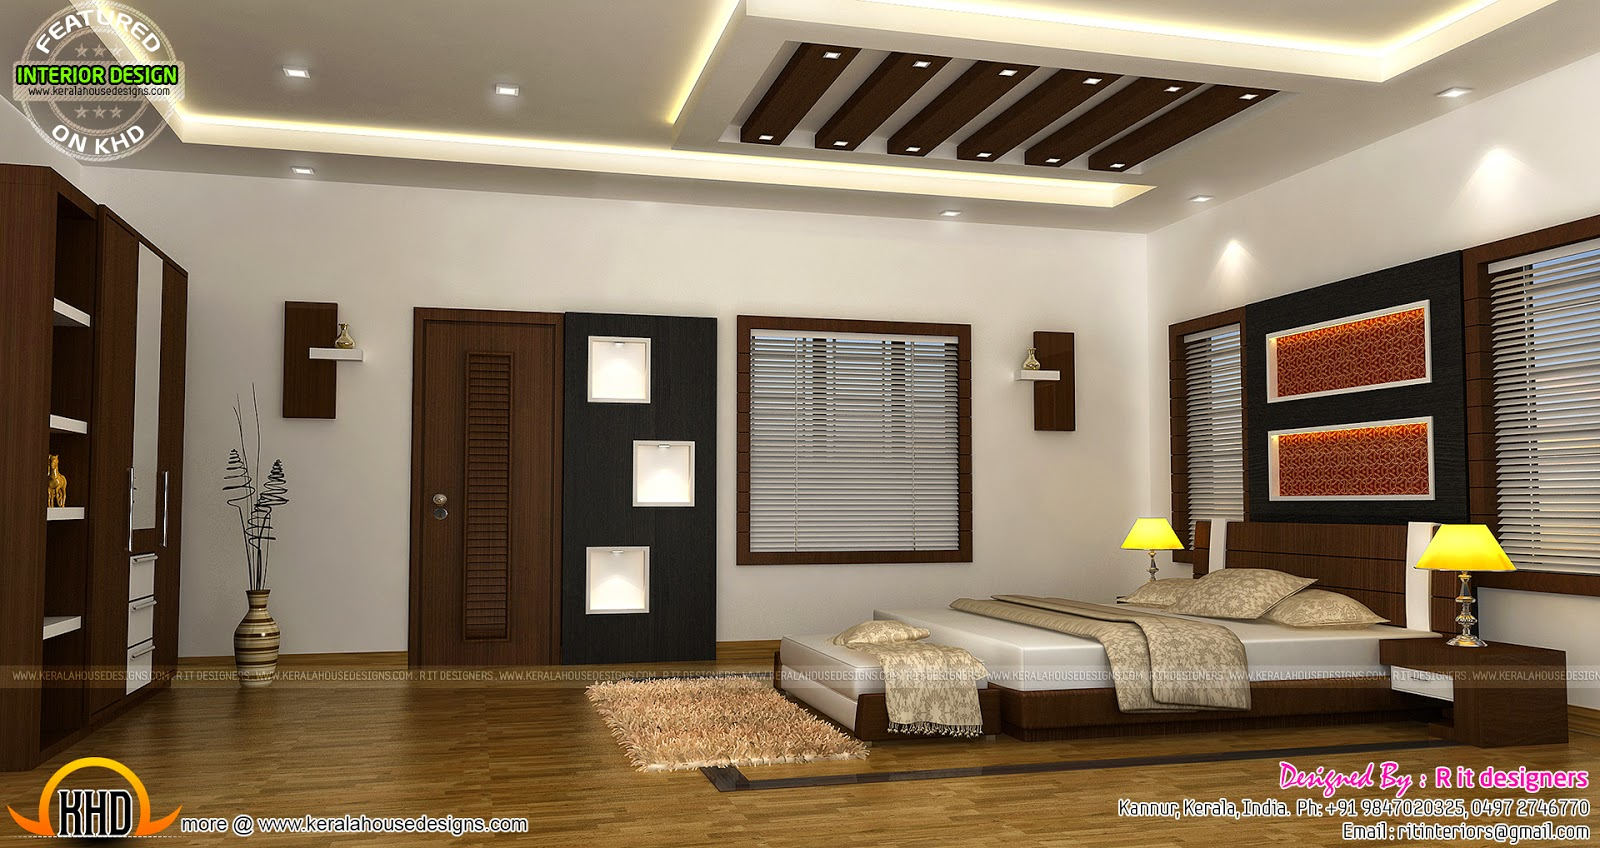 Bedroom interior design with cost kerala home design and for Bed room interior design images